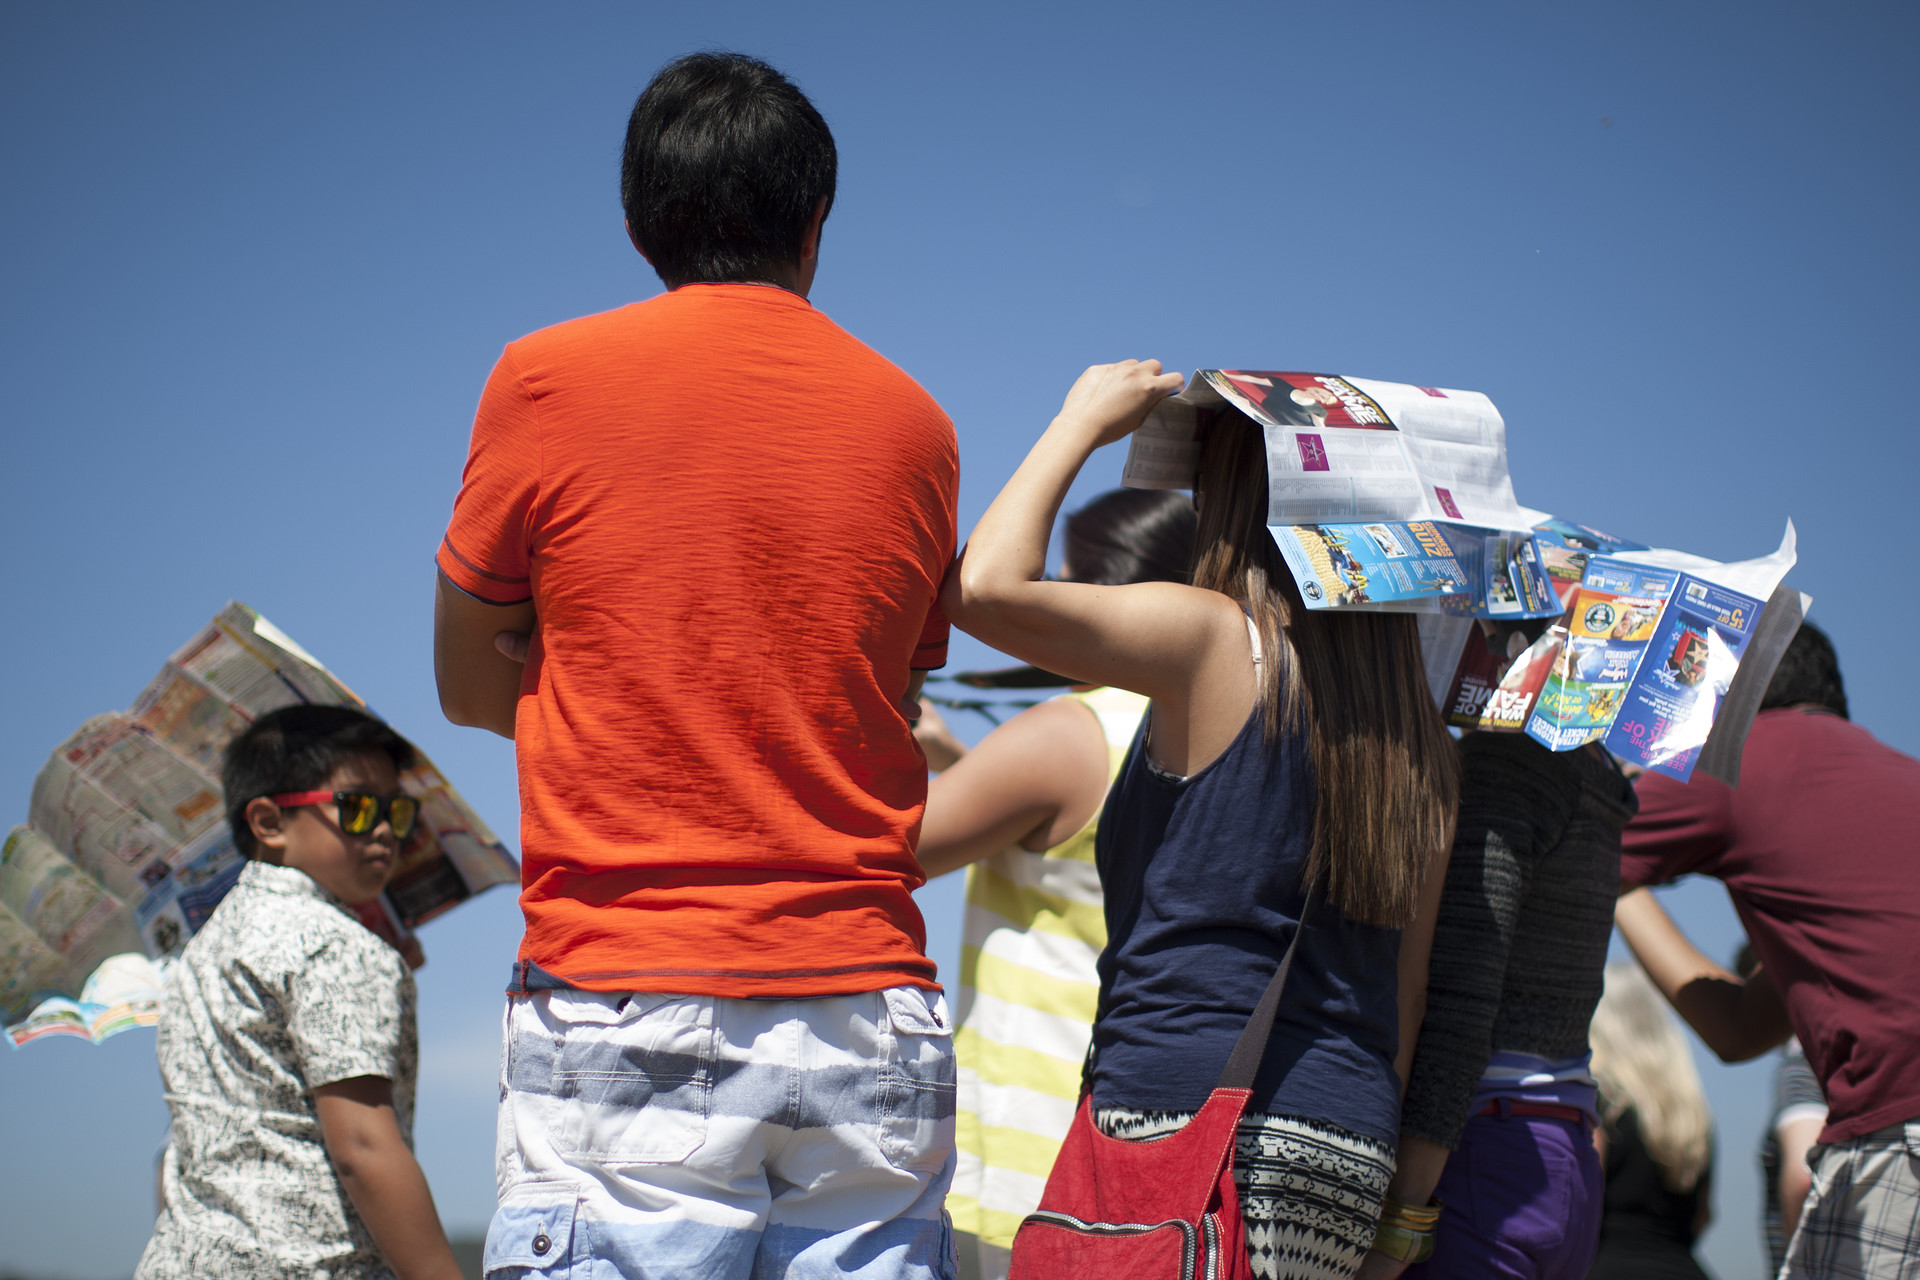 People hold Hollywood tourist maps over their heads as makeshift sunshade in Griffith Park in March 2015 in Los Angeles, California. A record-breaking series of unusual heat waves made this the first March to have had six days with highs in the 90s or above in Los Angeles since at least 1877 when record-keeping began.